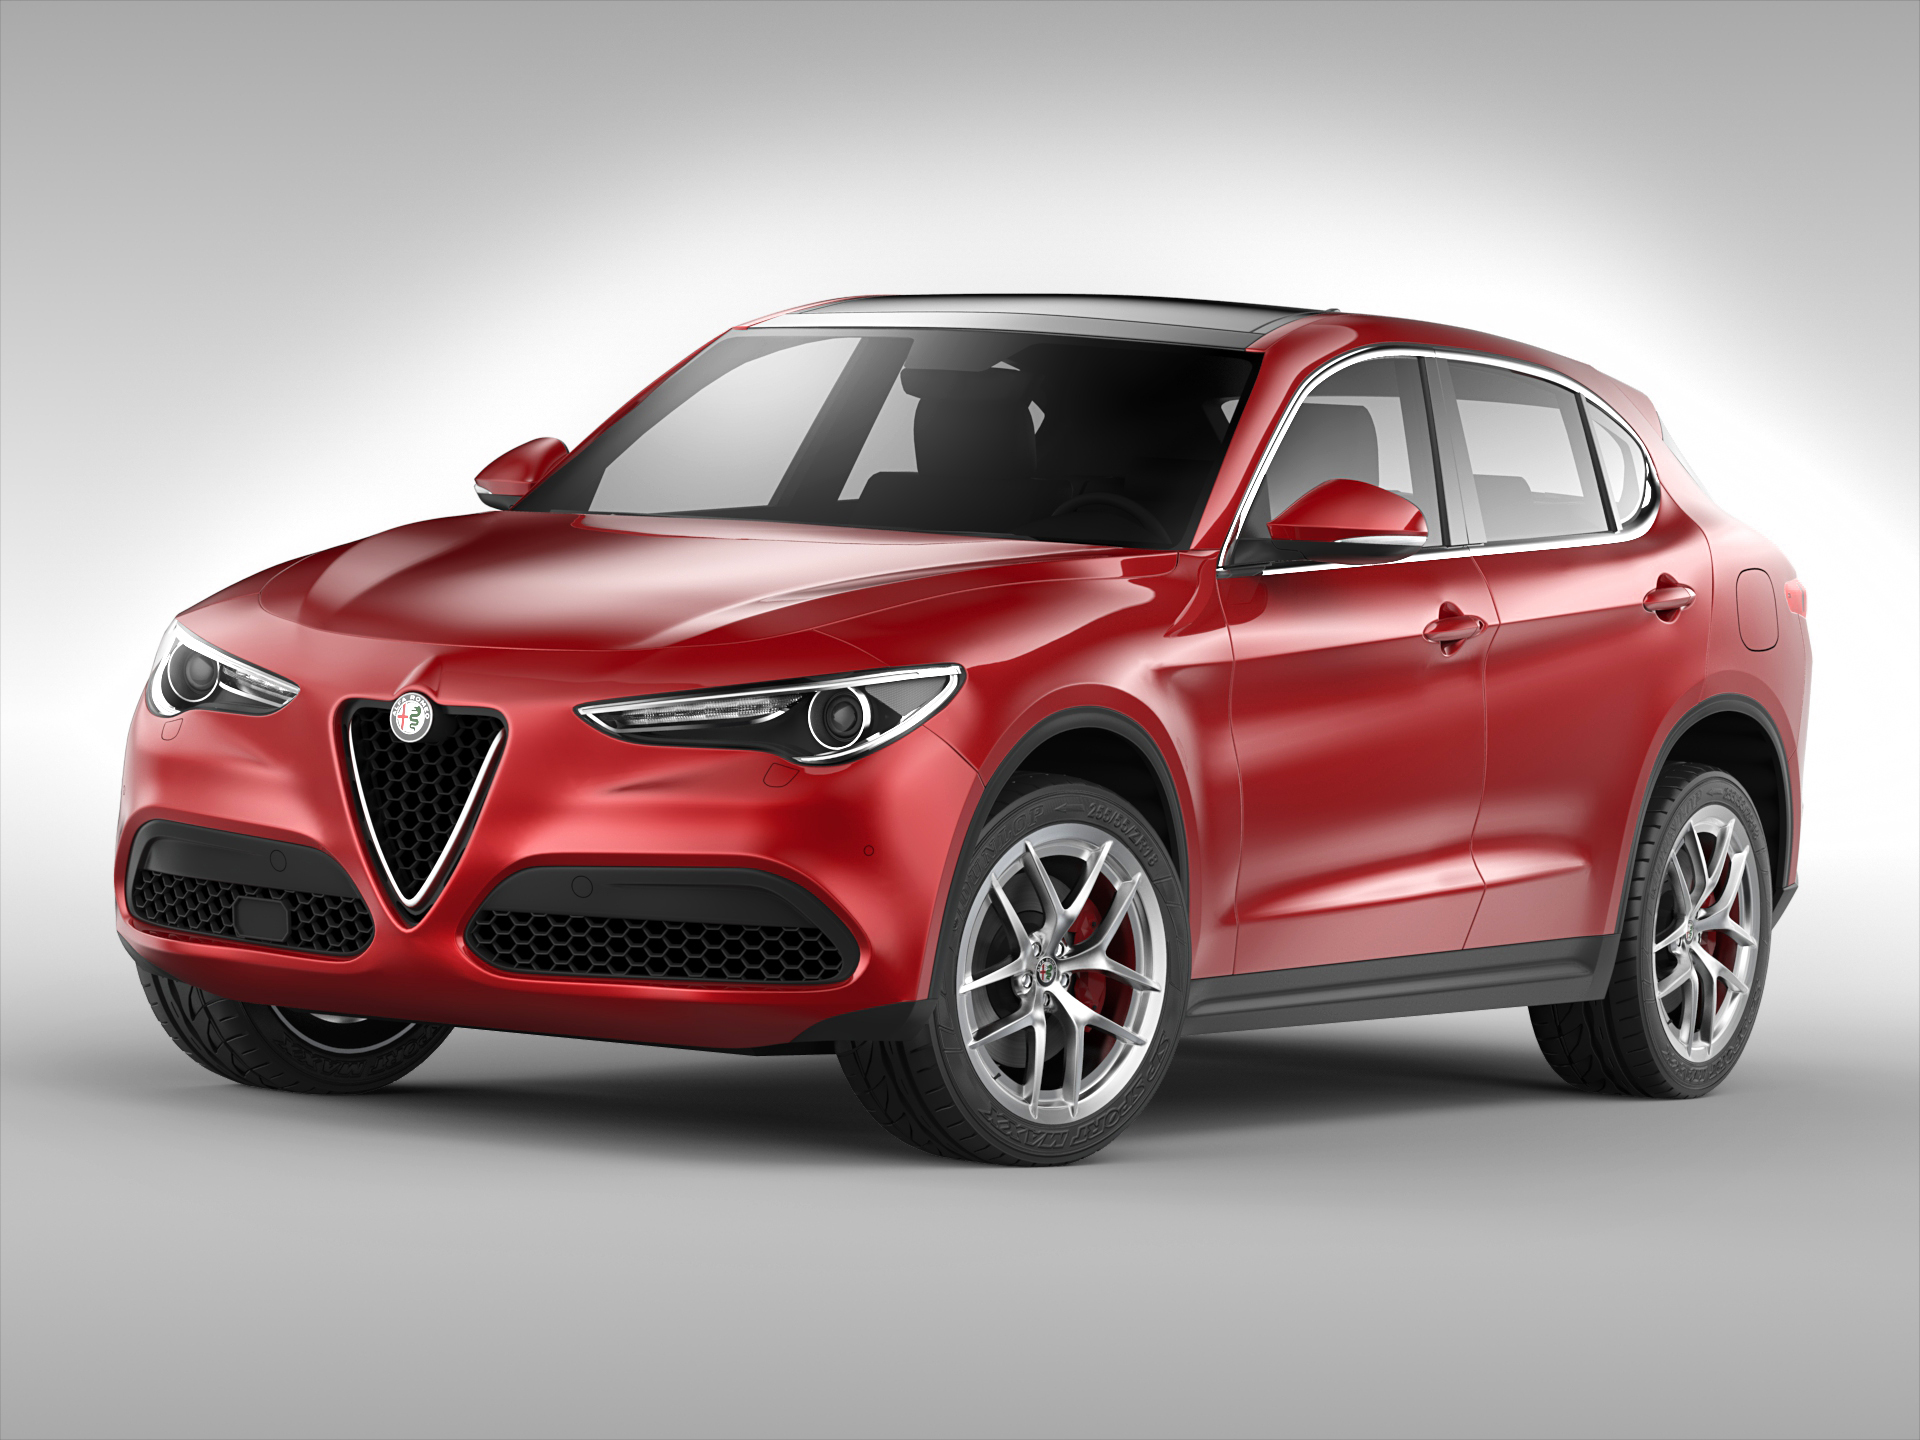 alfa romeo stelvio (2018) 3d model 3ds max fbx c4d am mb obj 273832